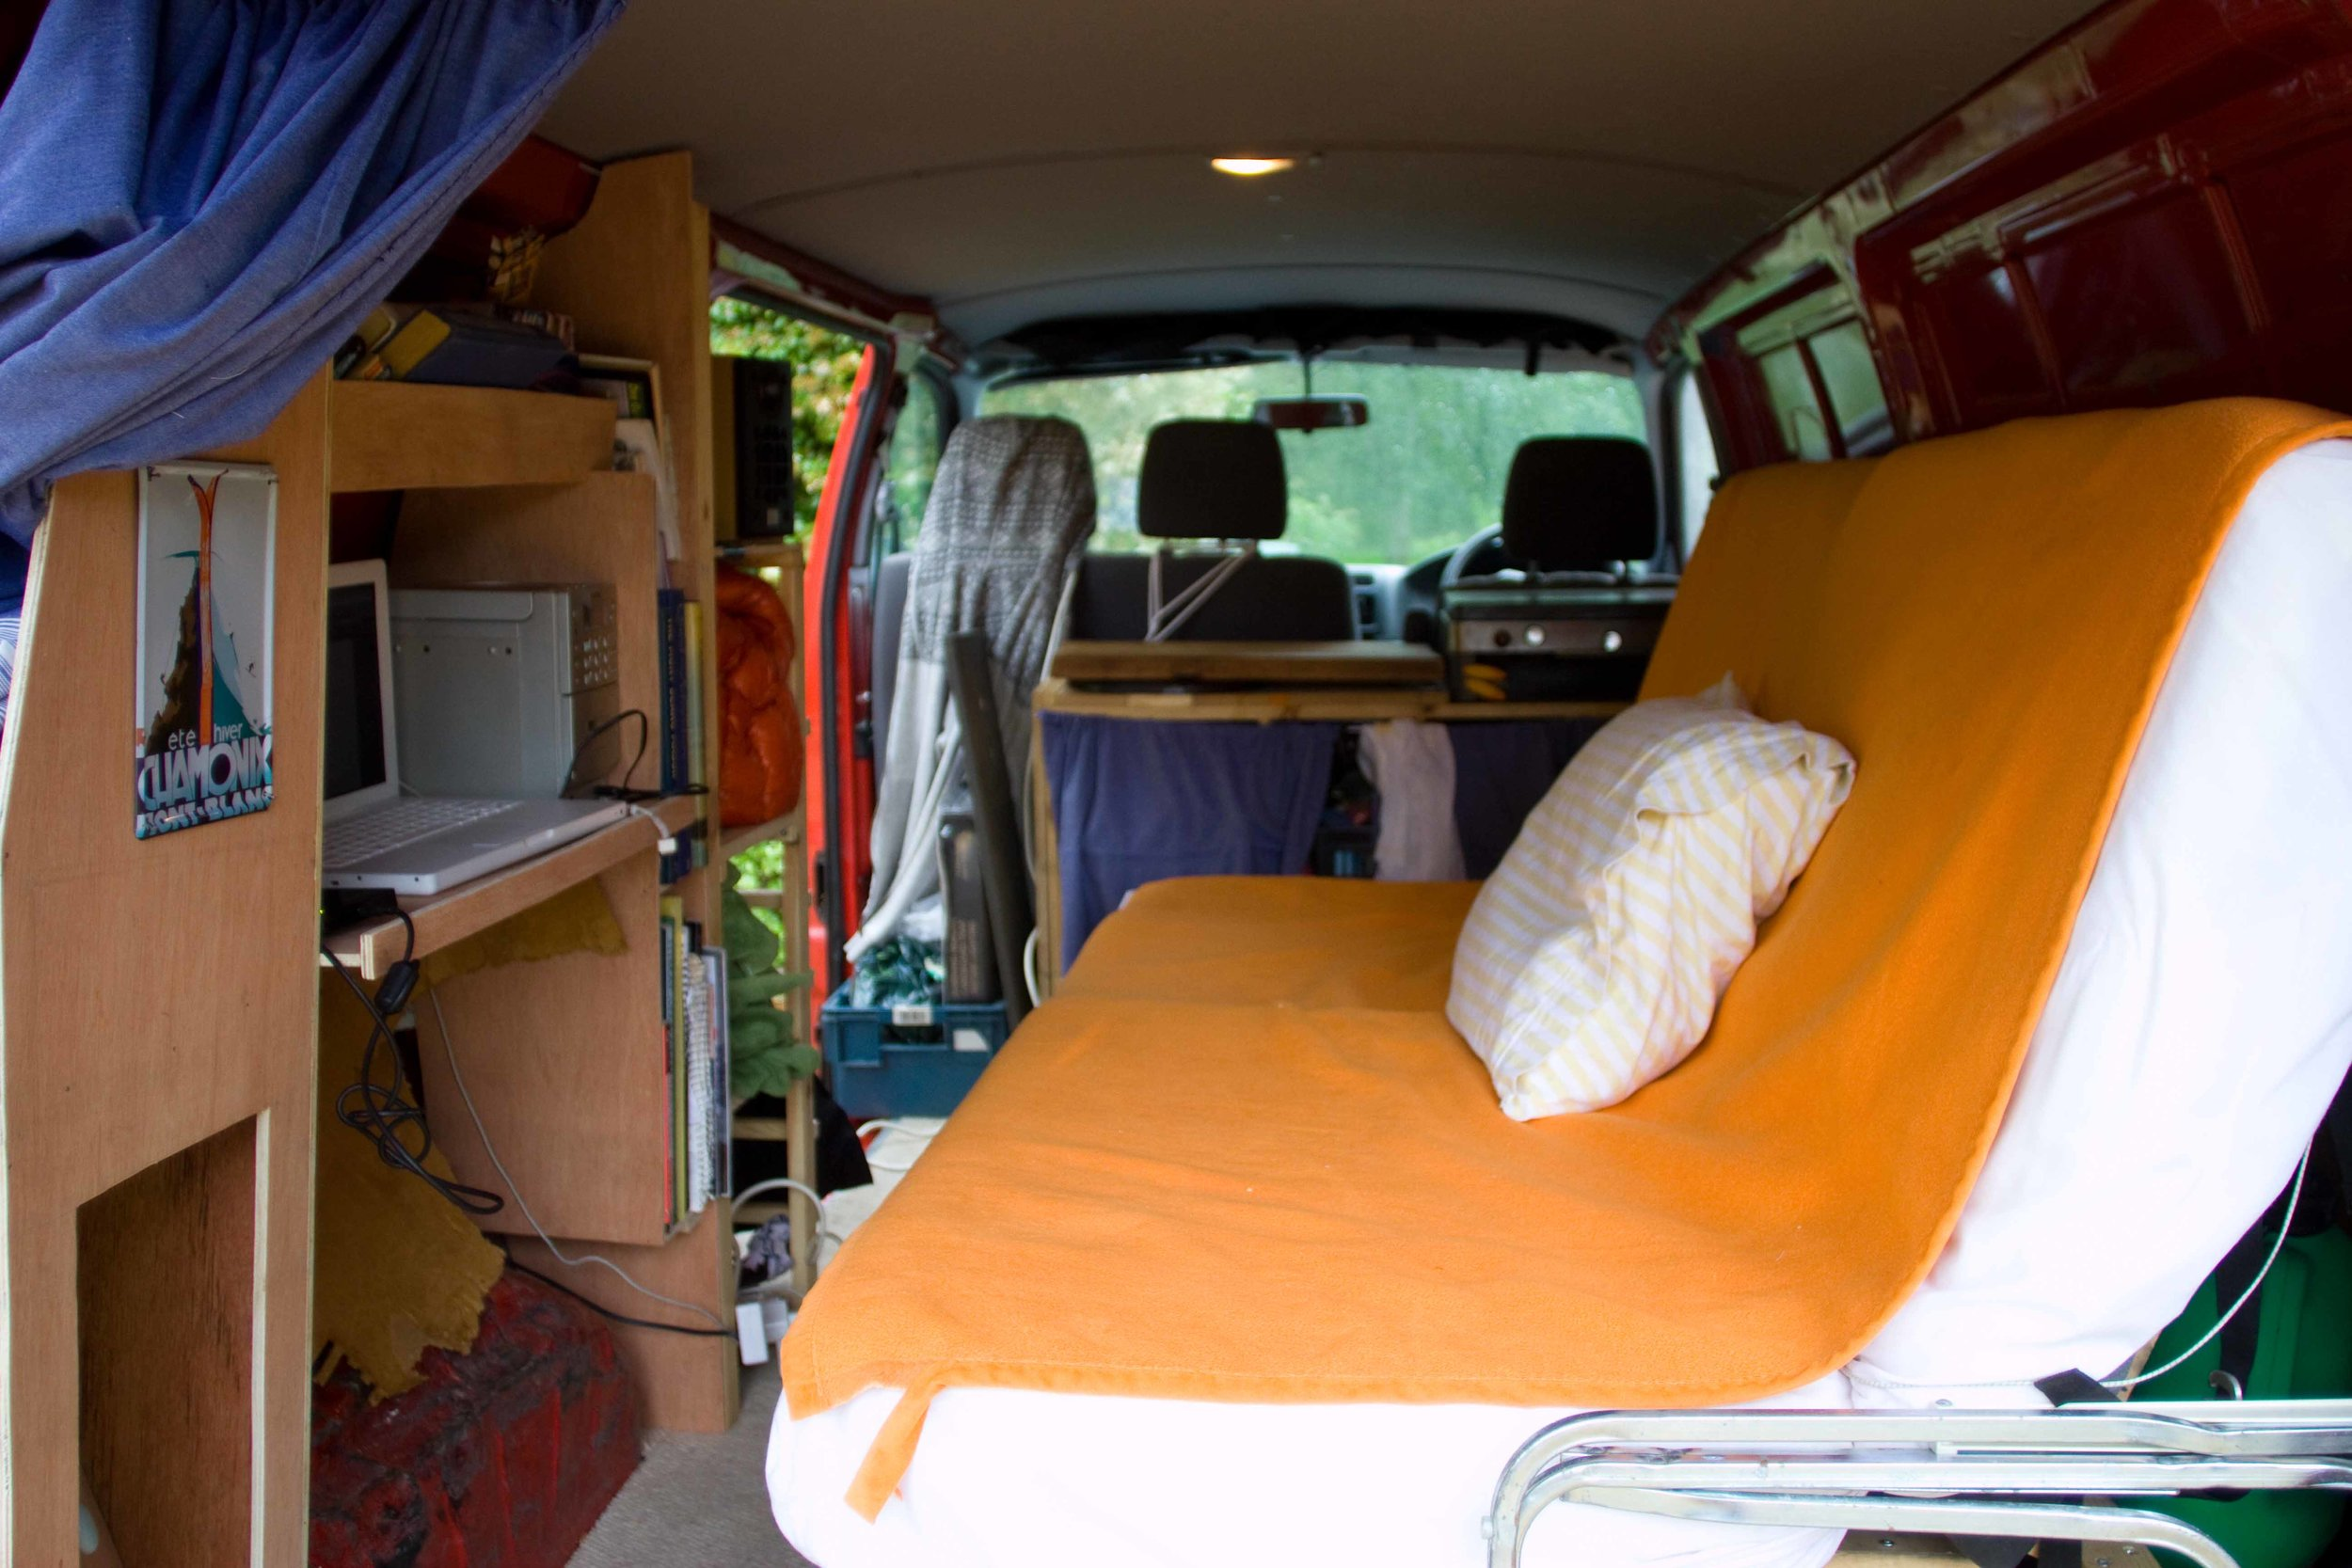 The Van ( The Cooler) in which I spent the season.